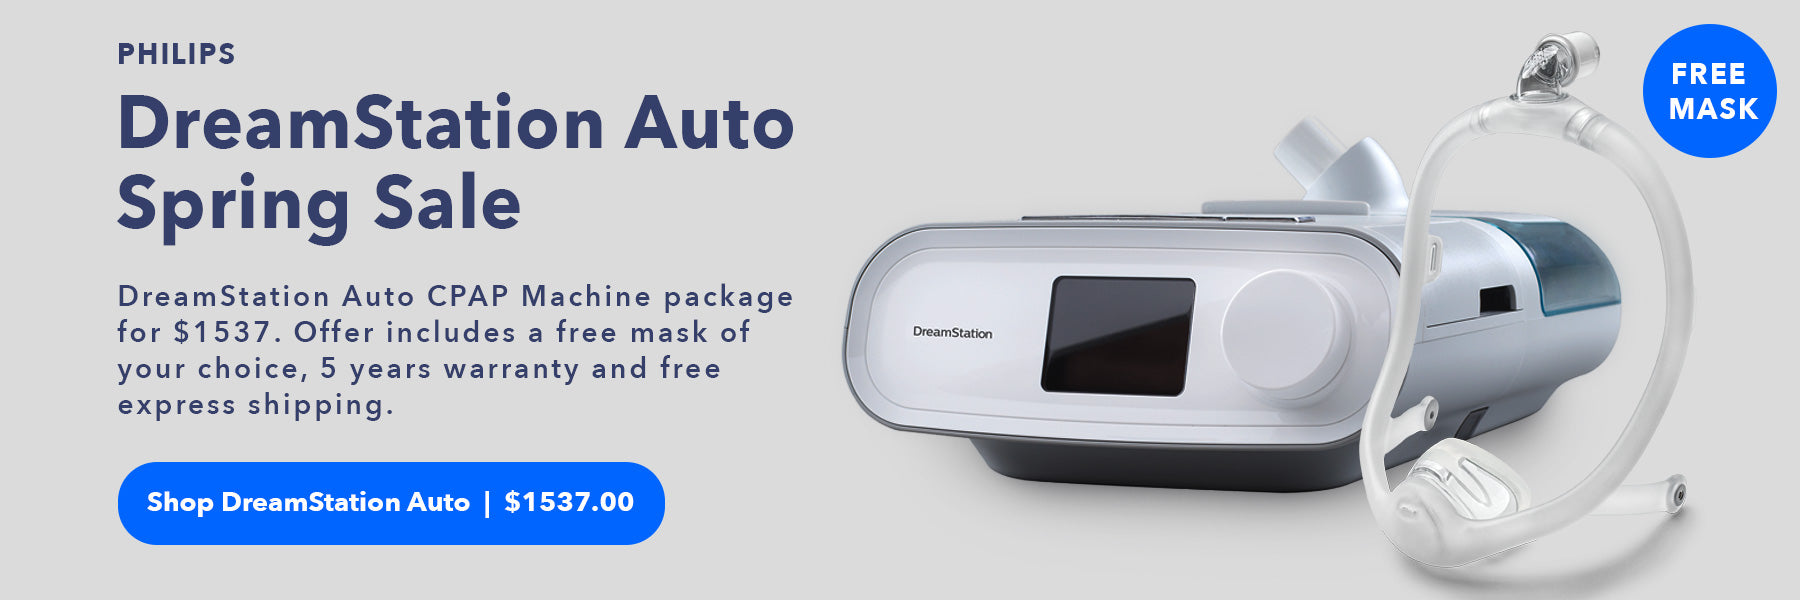 Philips DreamStaion Auto CPAP Machine Sales